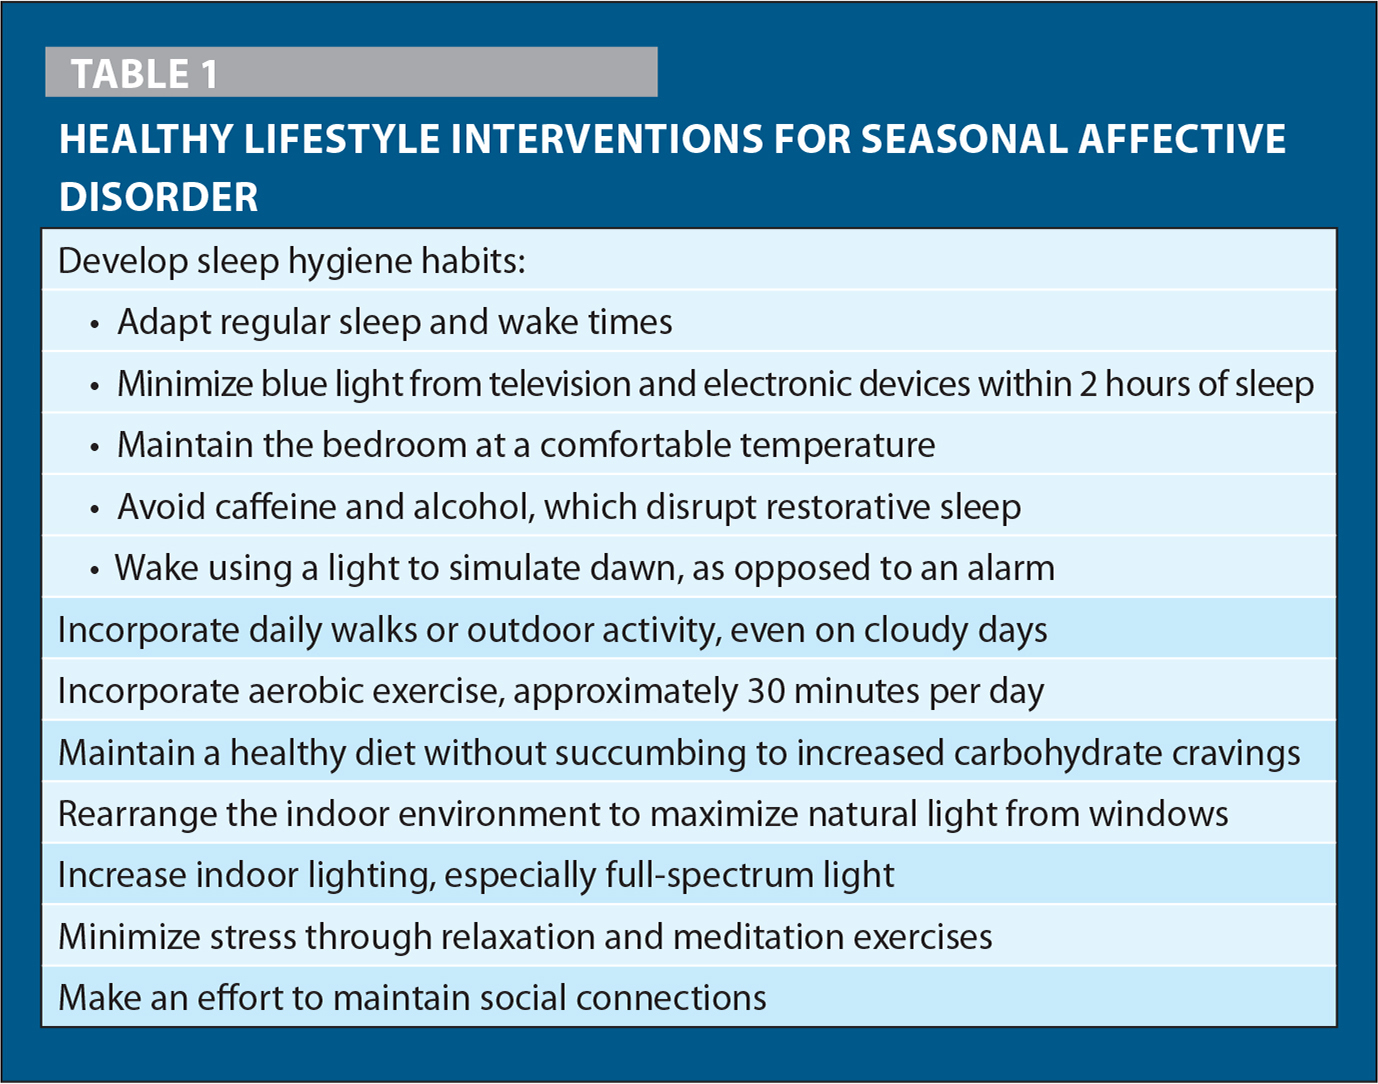 Healthy Lifestyle Interventions for Seasonal Affective Disorder